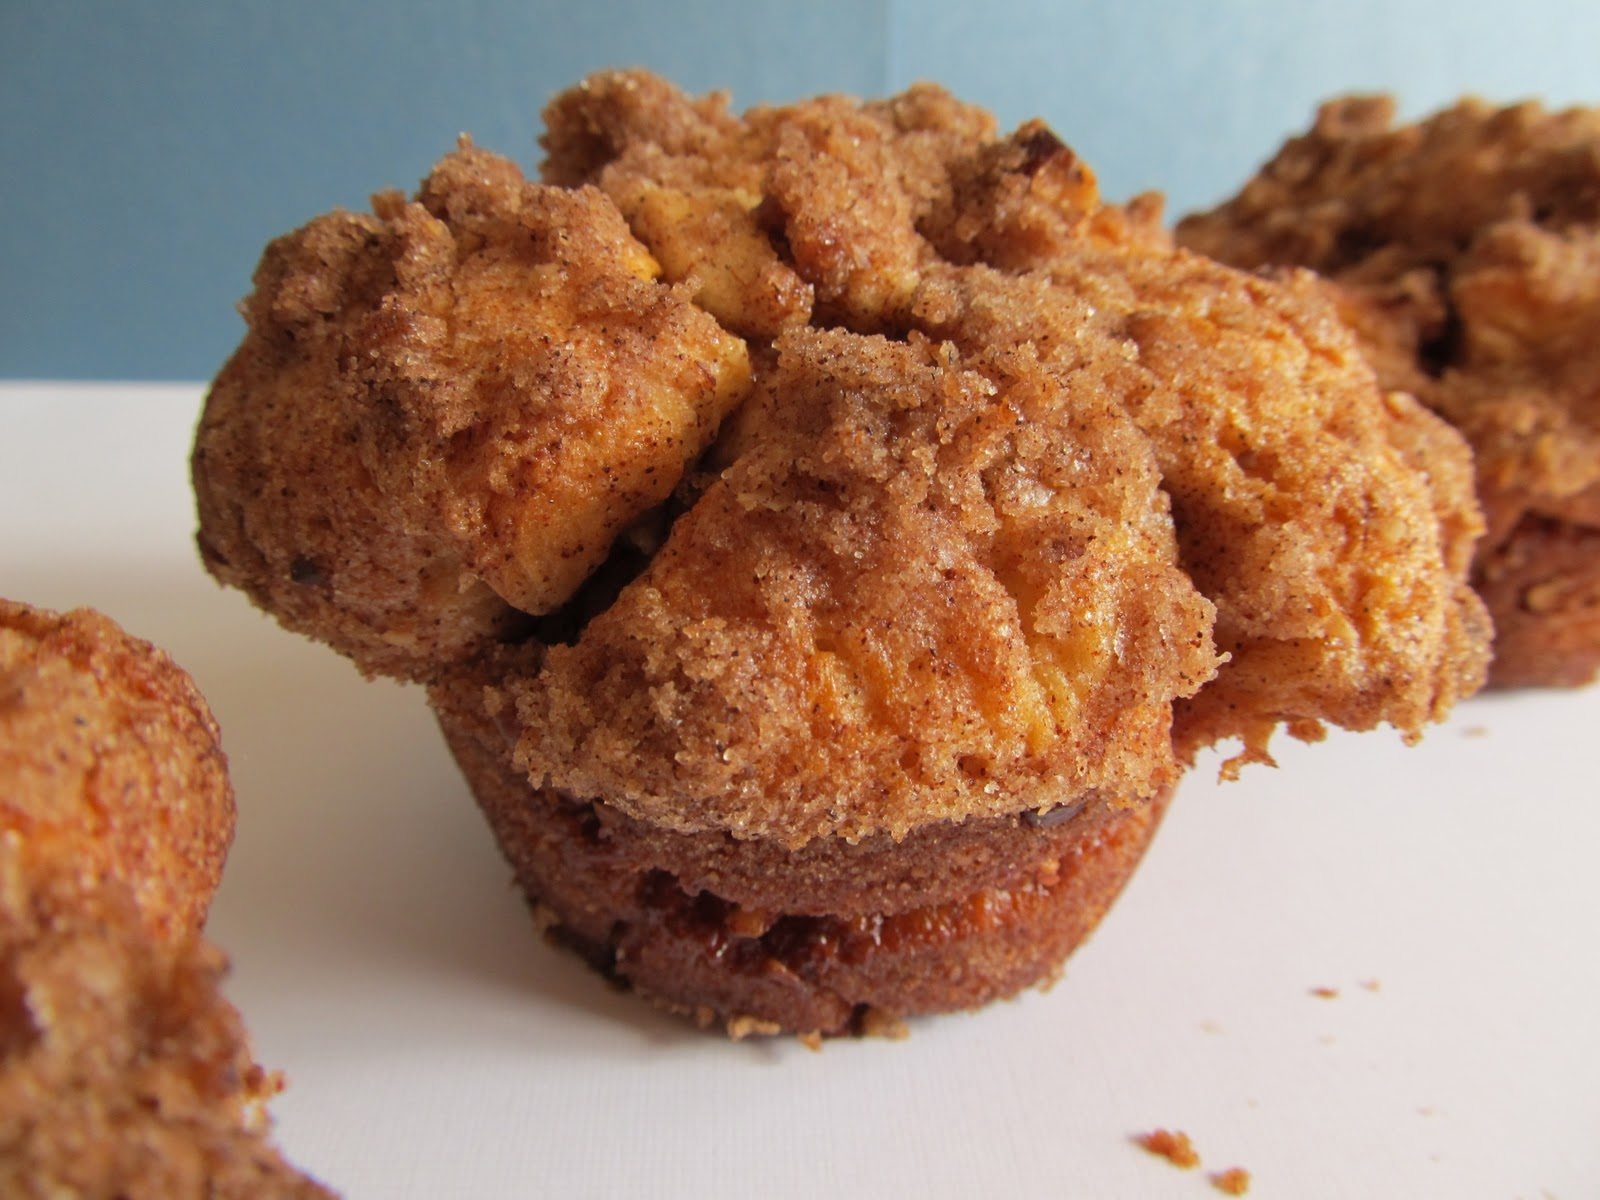 Mary Quite Contrary Bakes: Jumbo Monkey-Bread Muffins